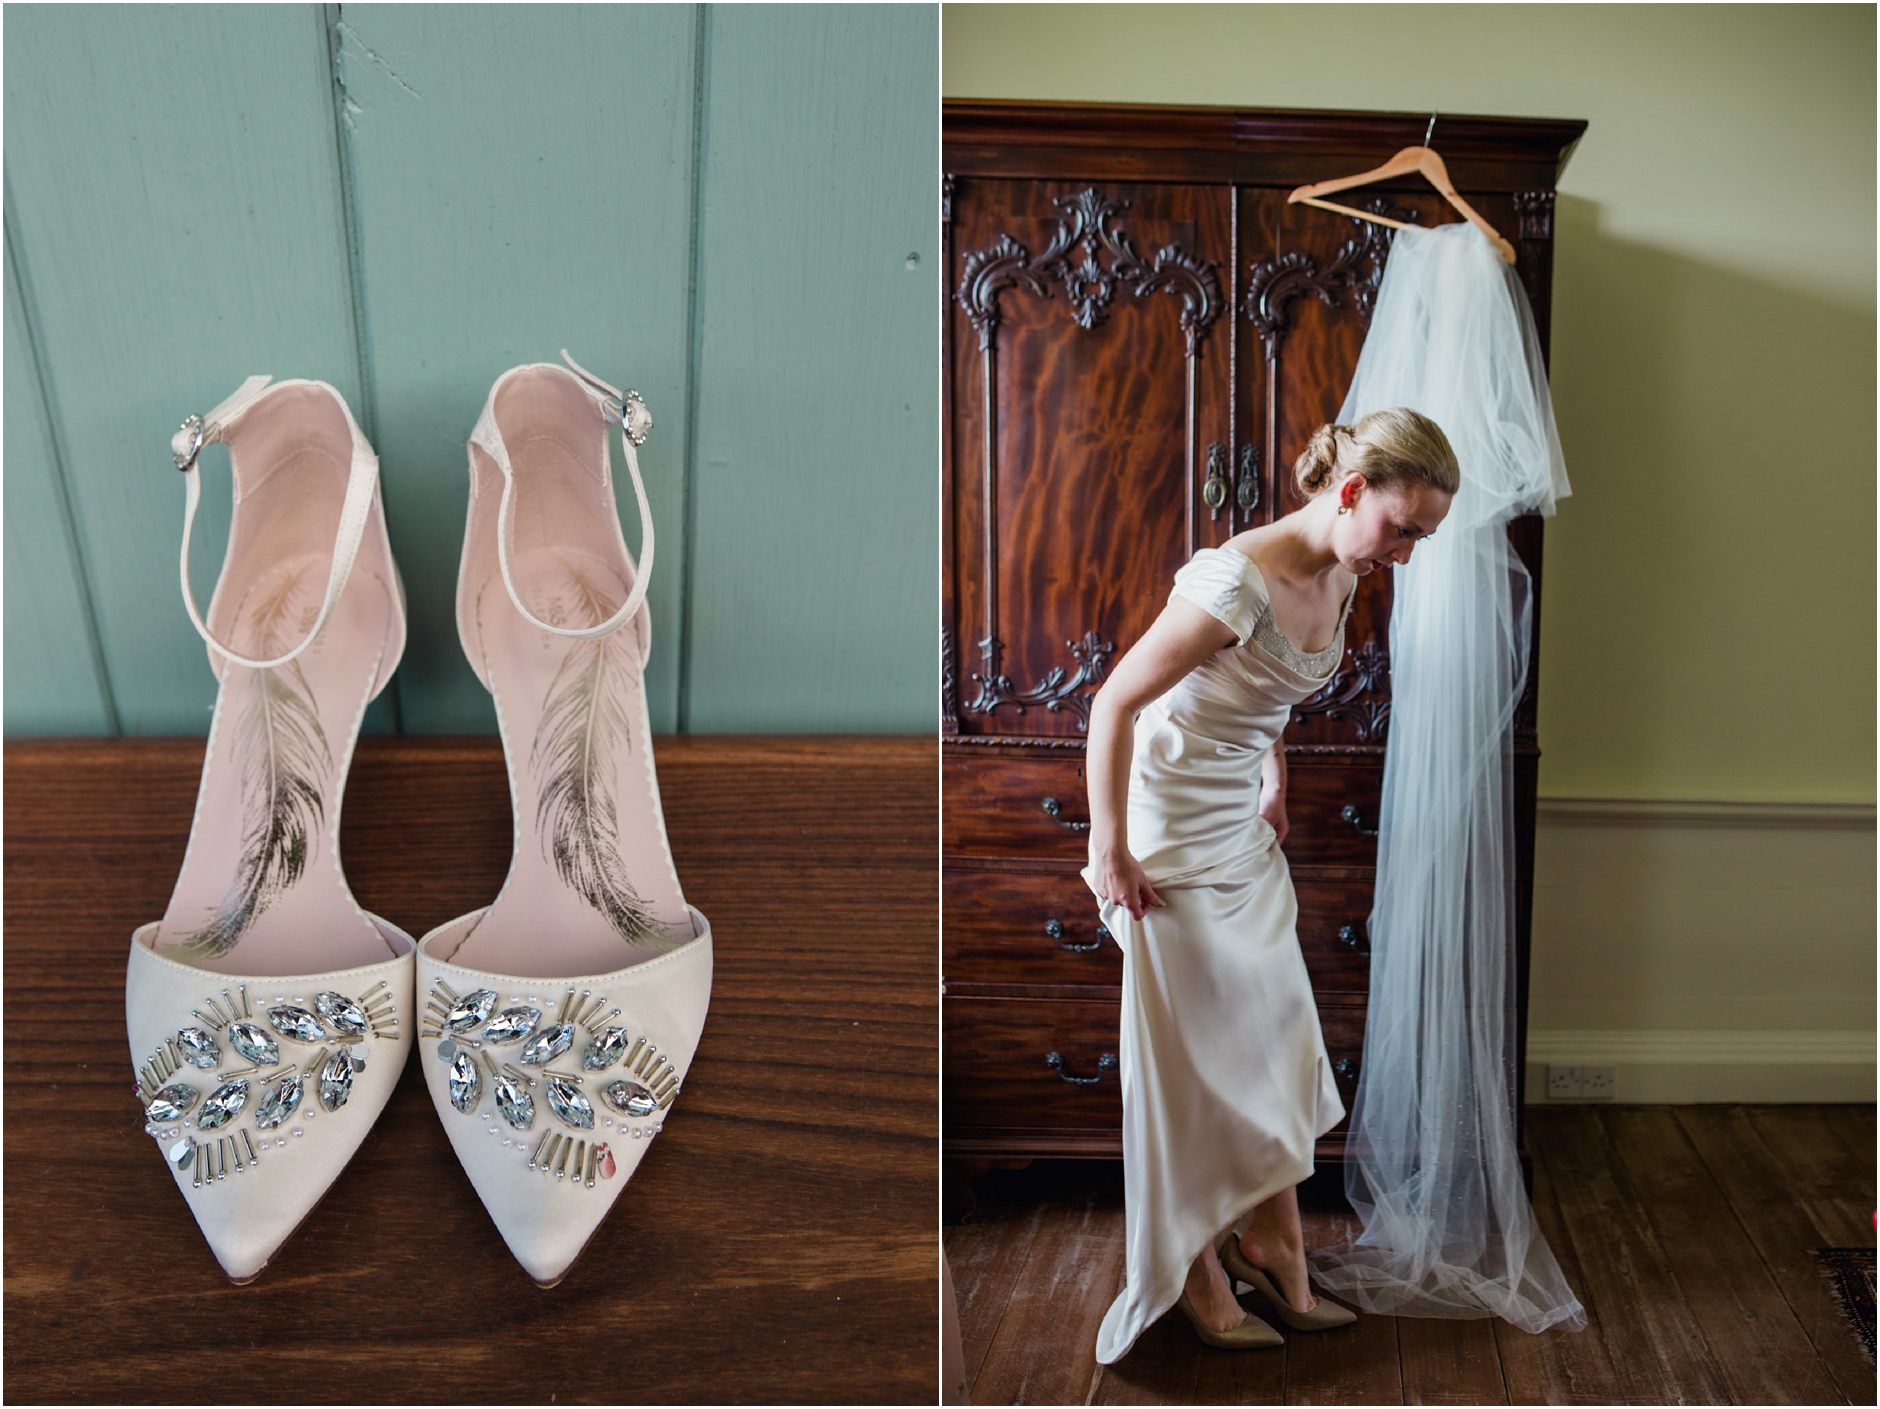 bride getting ready for her wedding day putting on shoes at boswell coach house. She has a classic vintage elegant look with a satin ivory dress.